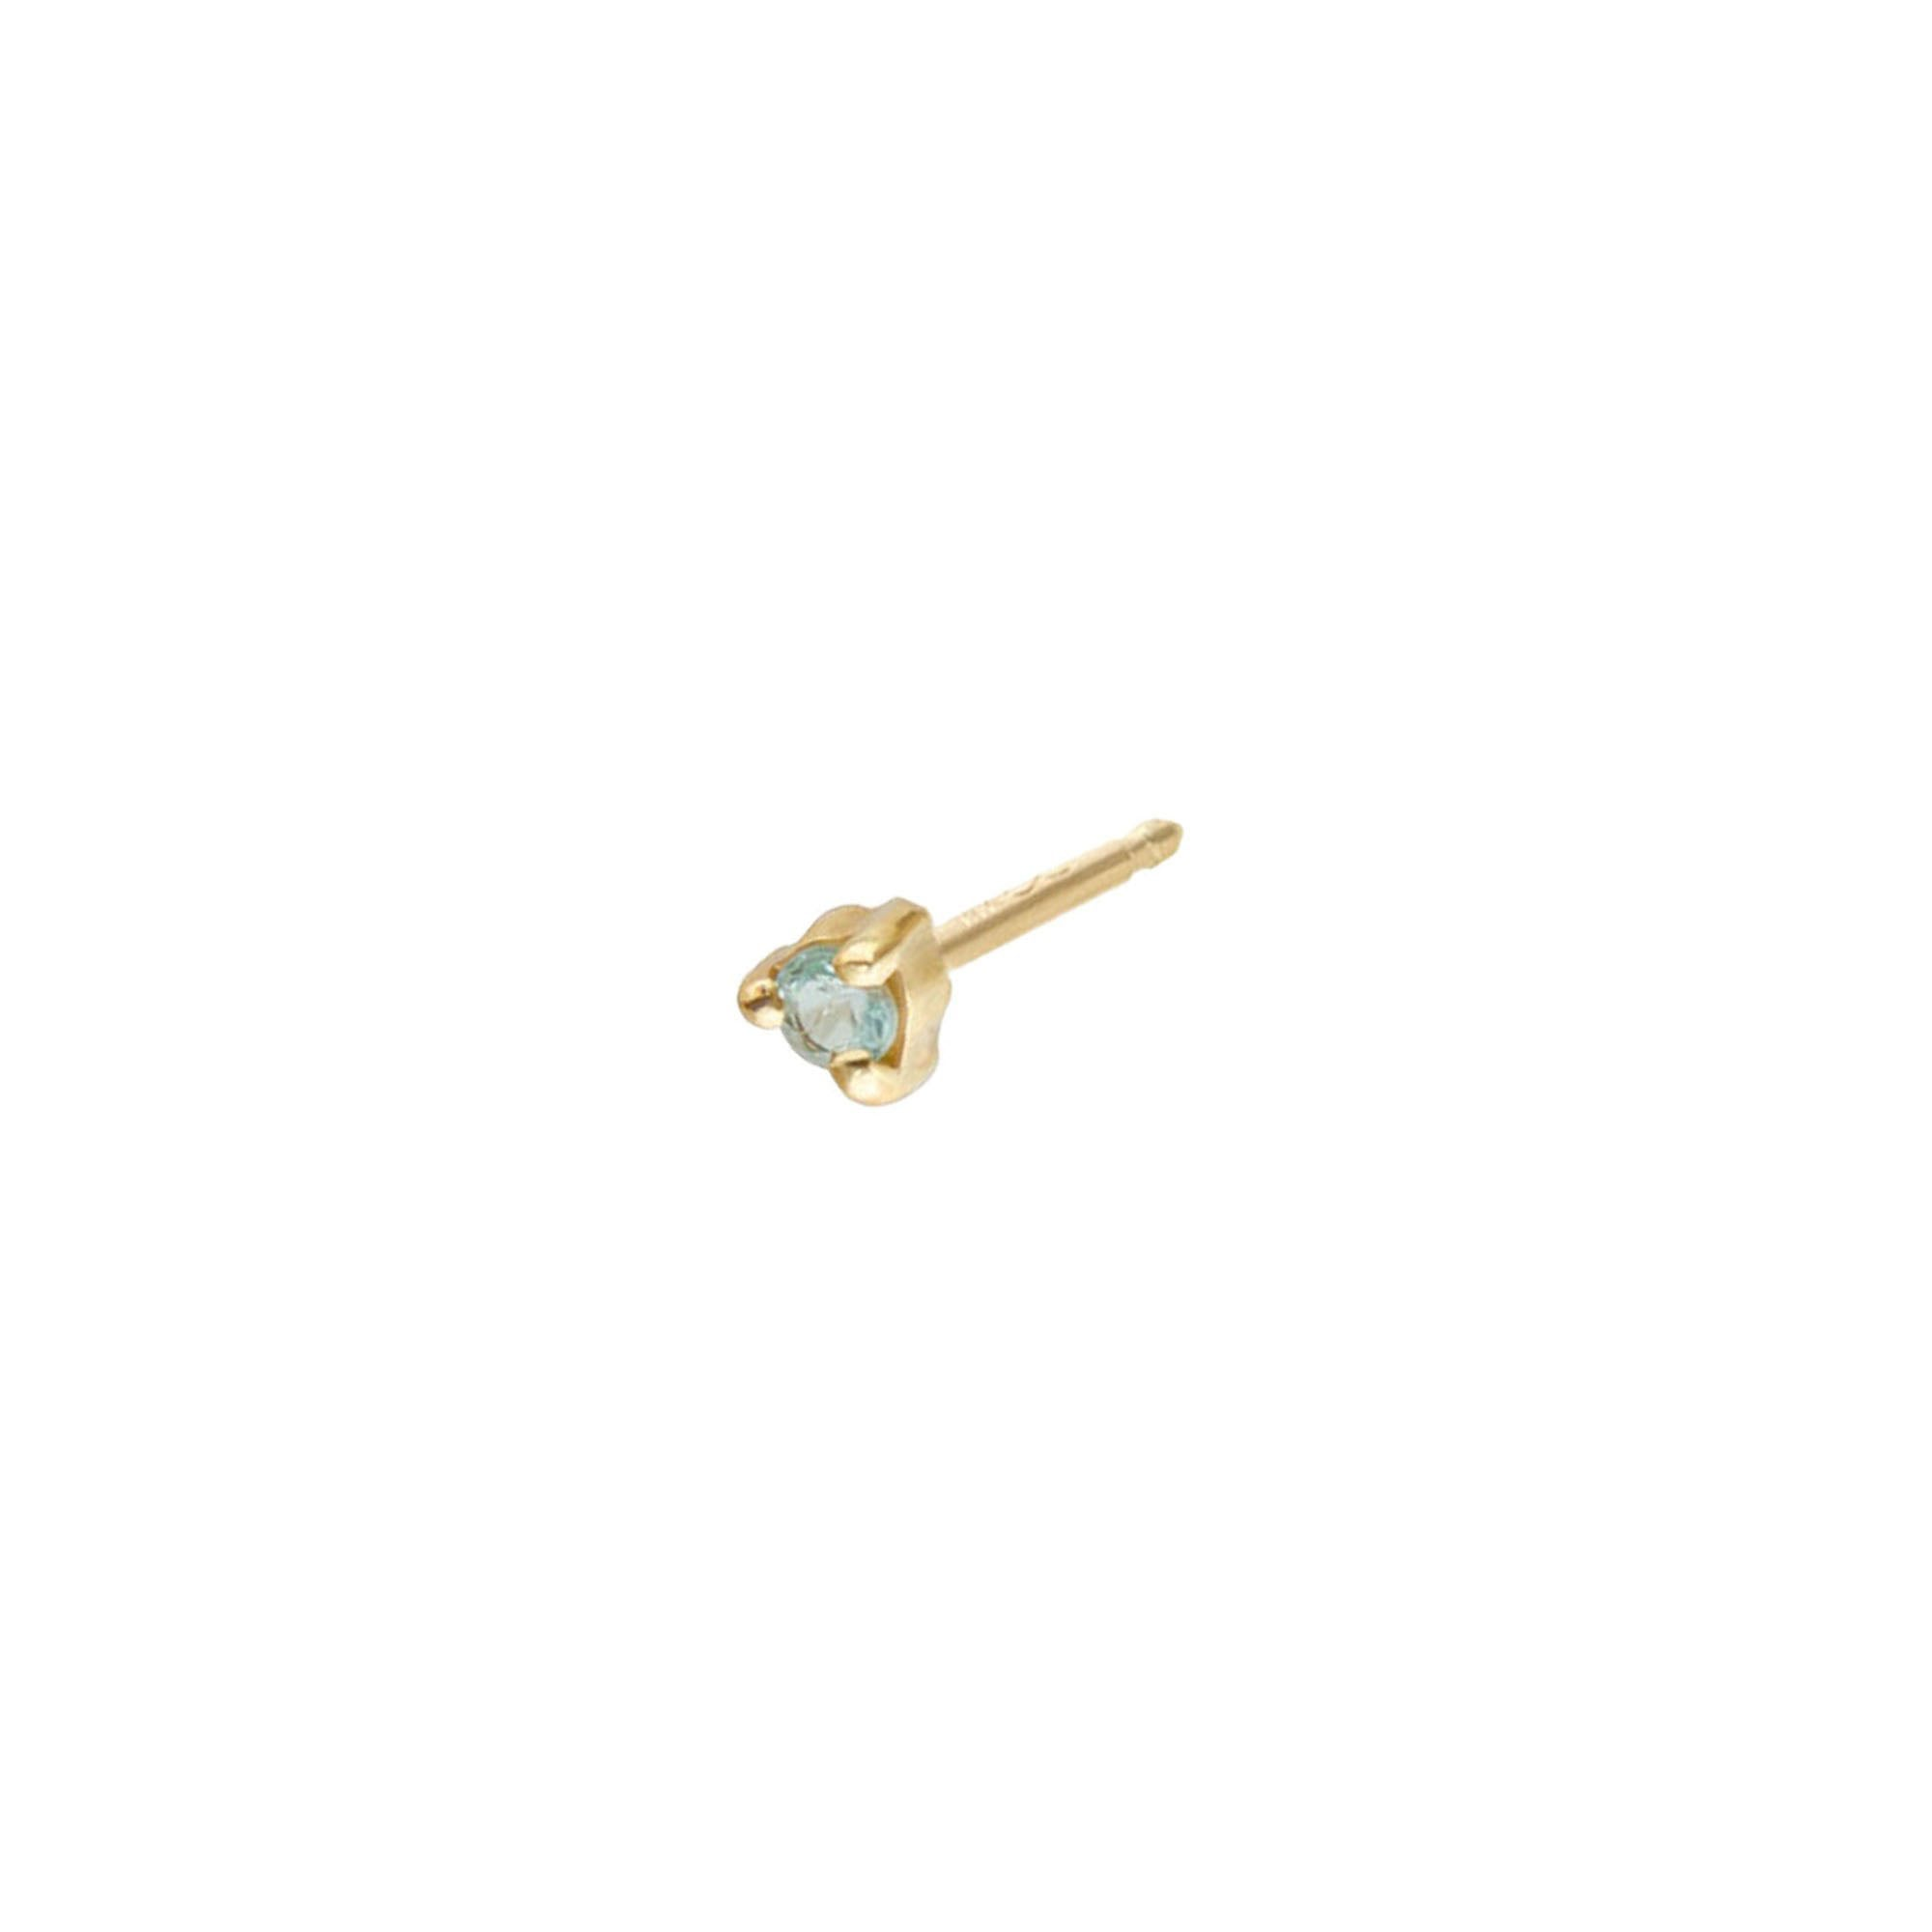 gold Small Blue Tourmaline Stud by Wwake for Broken English Jewelry